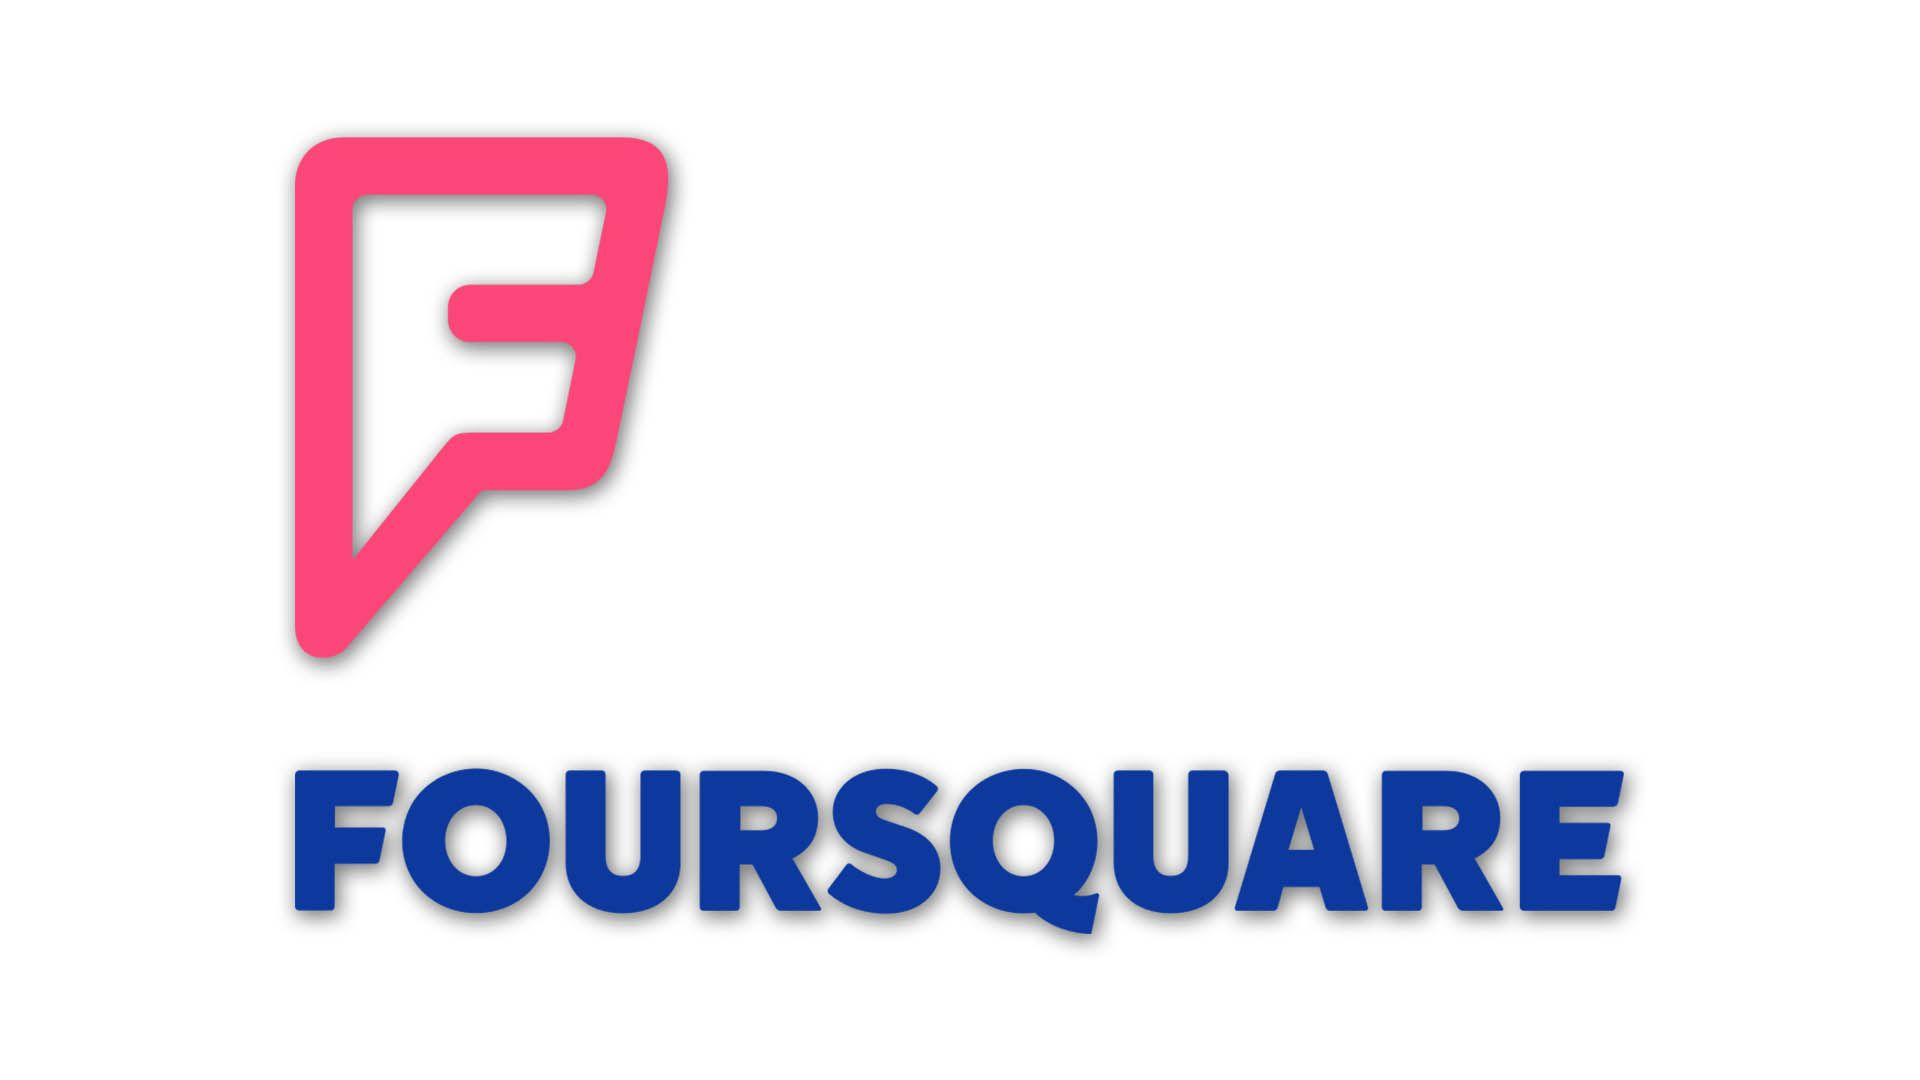 De 0 à 1 million d'utilisateurs par an (Foursquare) #GrowthHacking #WEbMarketing #FormationGrowthHacking #CentreDeFormationFrance #TunnelAARRR #AARRR #SocialMedia #CommunityManagement #SEO #Foursquare